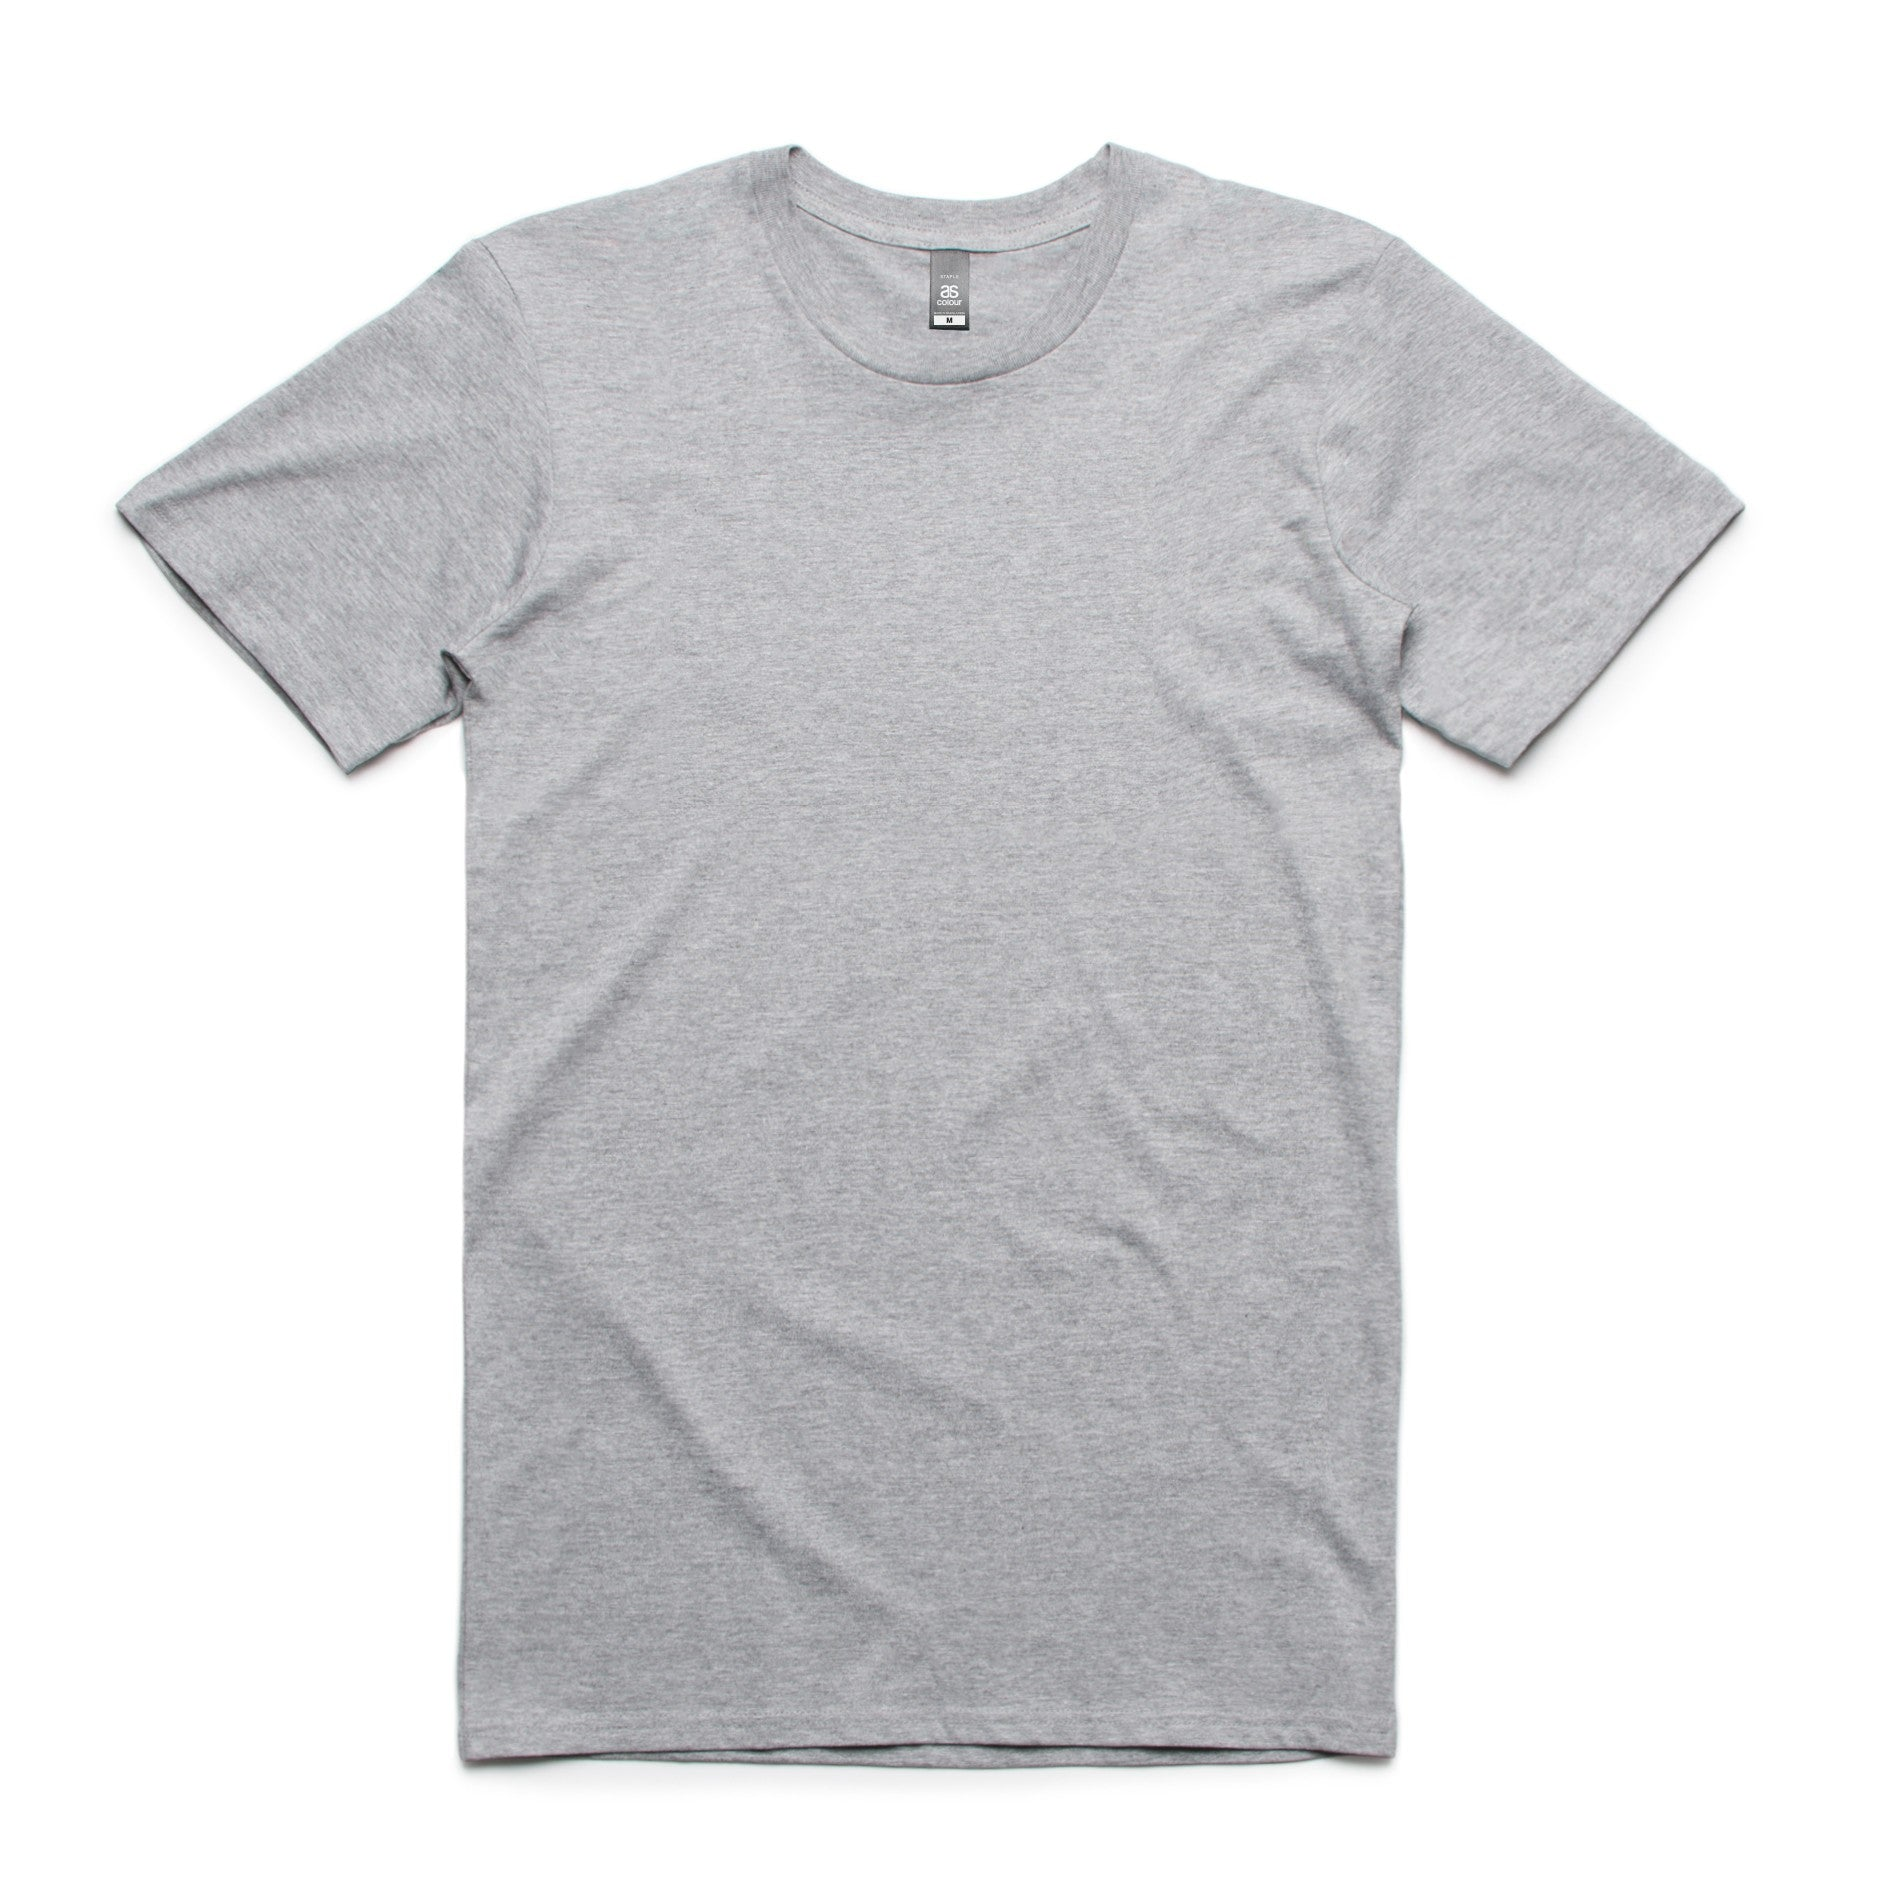 STAPLE TEE - 3 EXTRA LARGE ONLY - BUY ONE GET ONE FREE